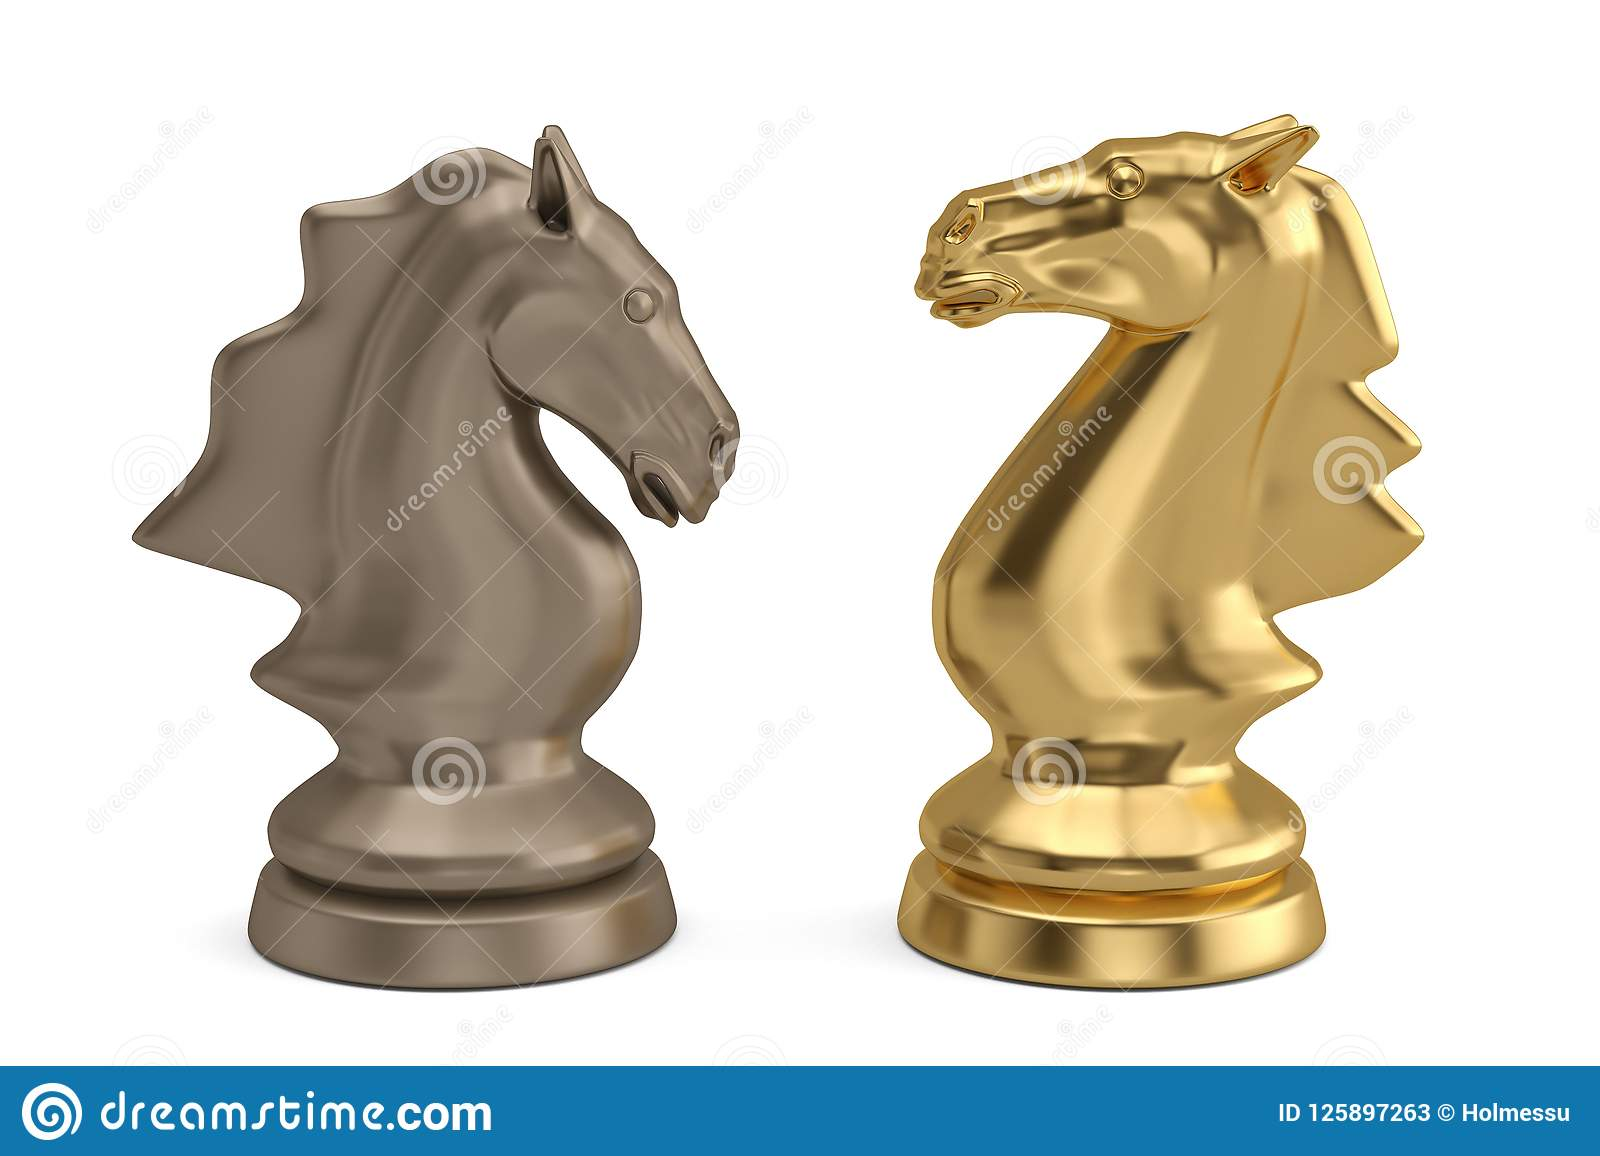 Knights chess piece on white background.3D illustration.